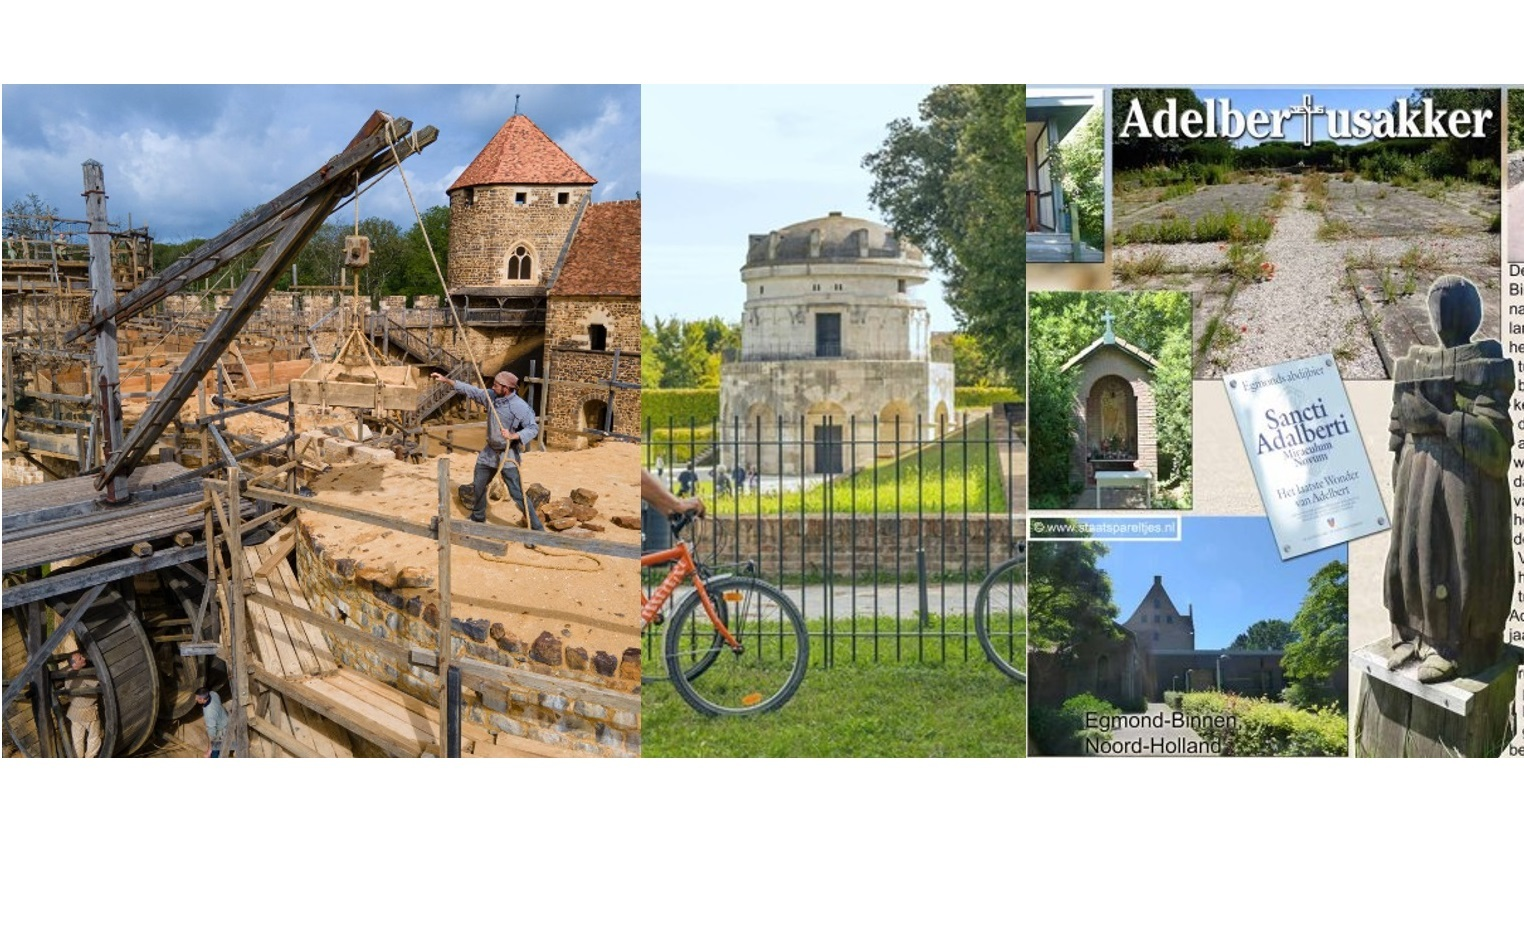 100 Blog Medieval excursion further from Leiden whited